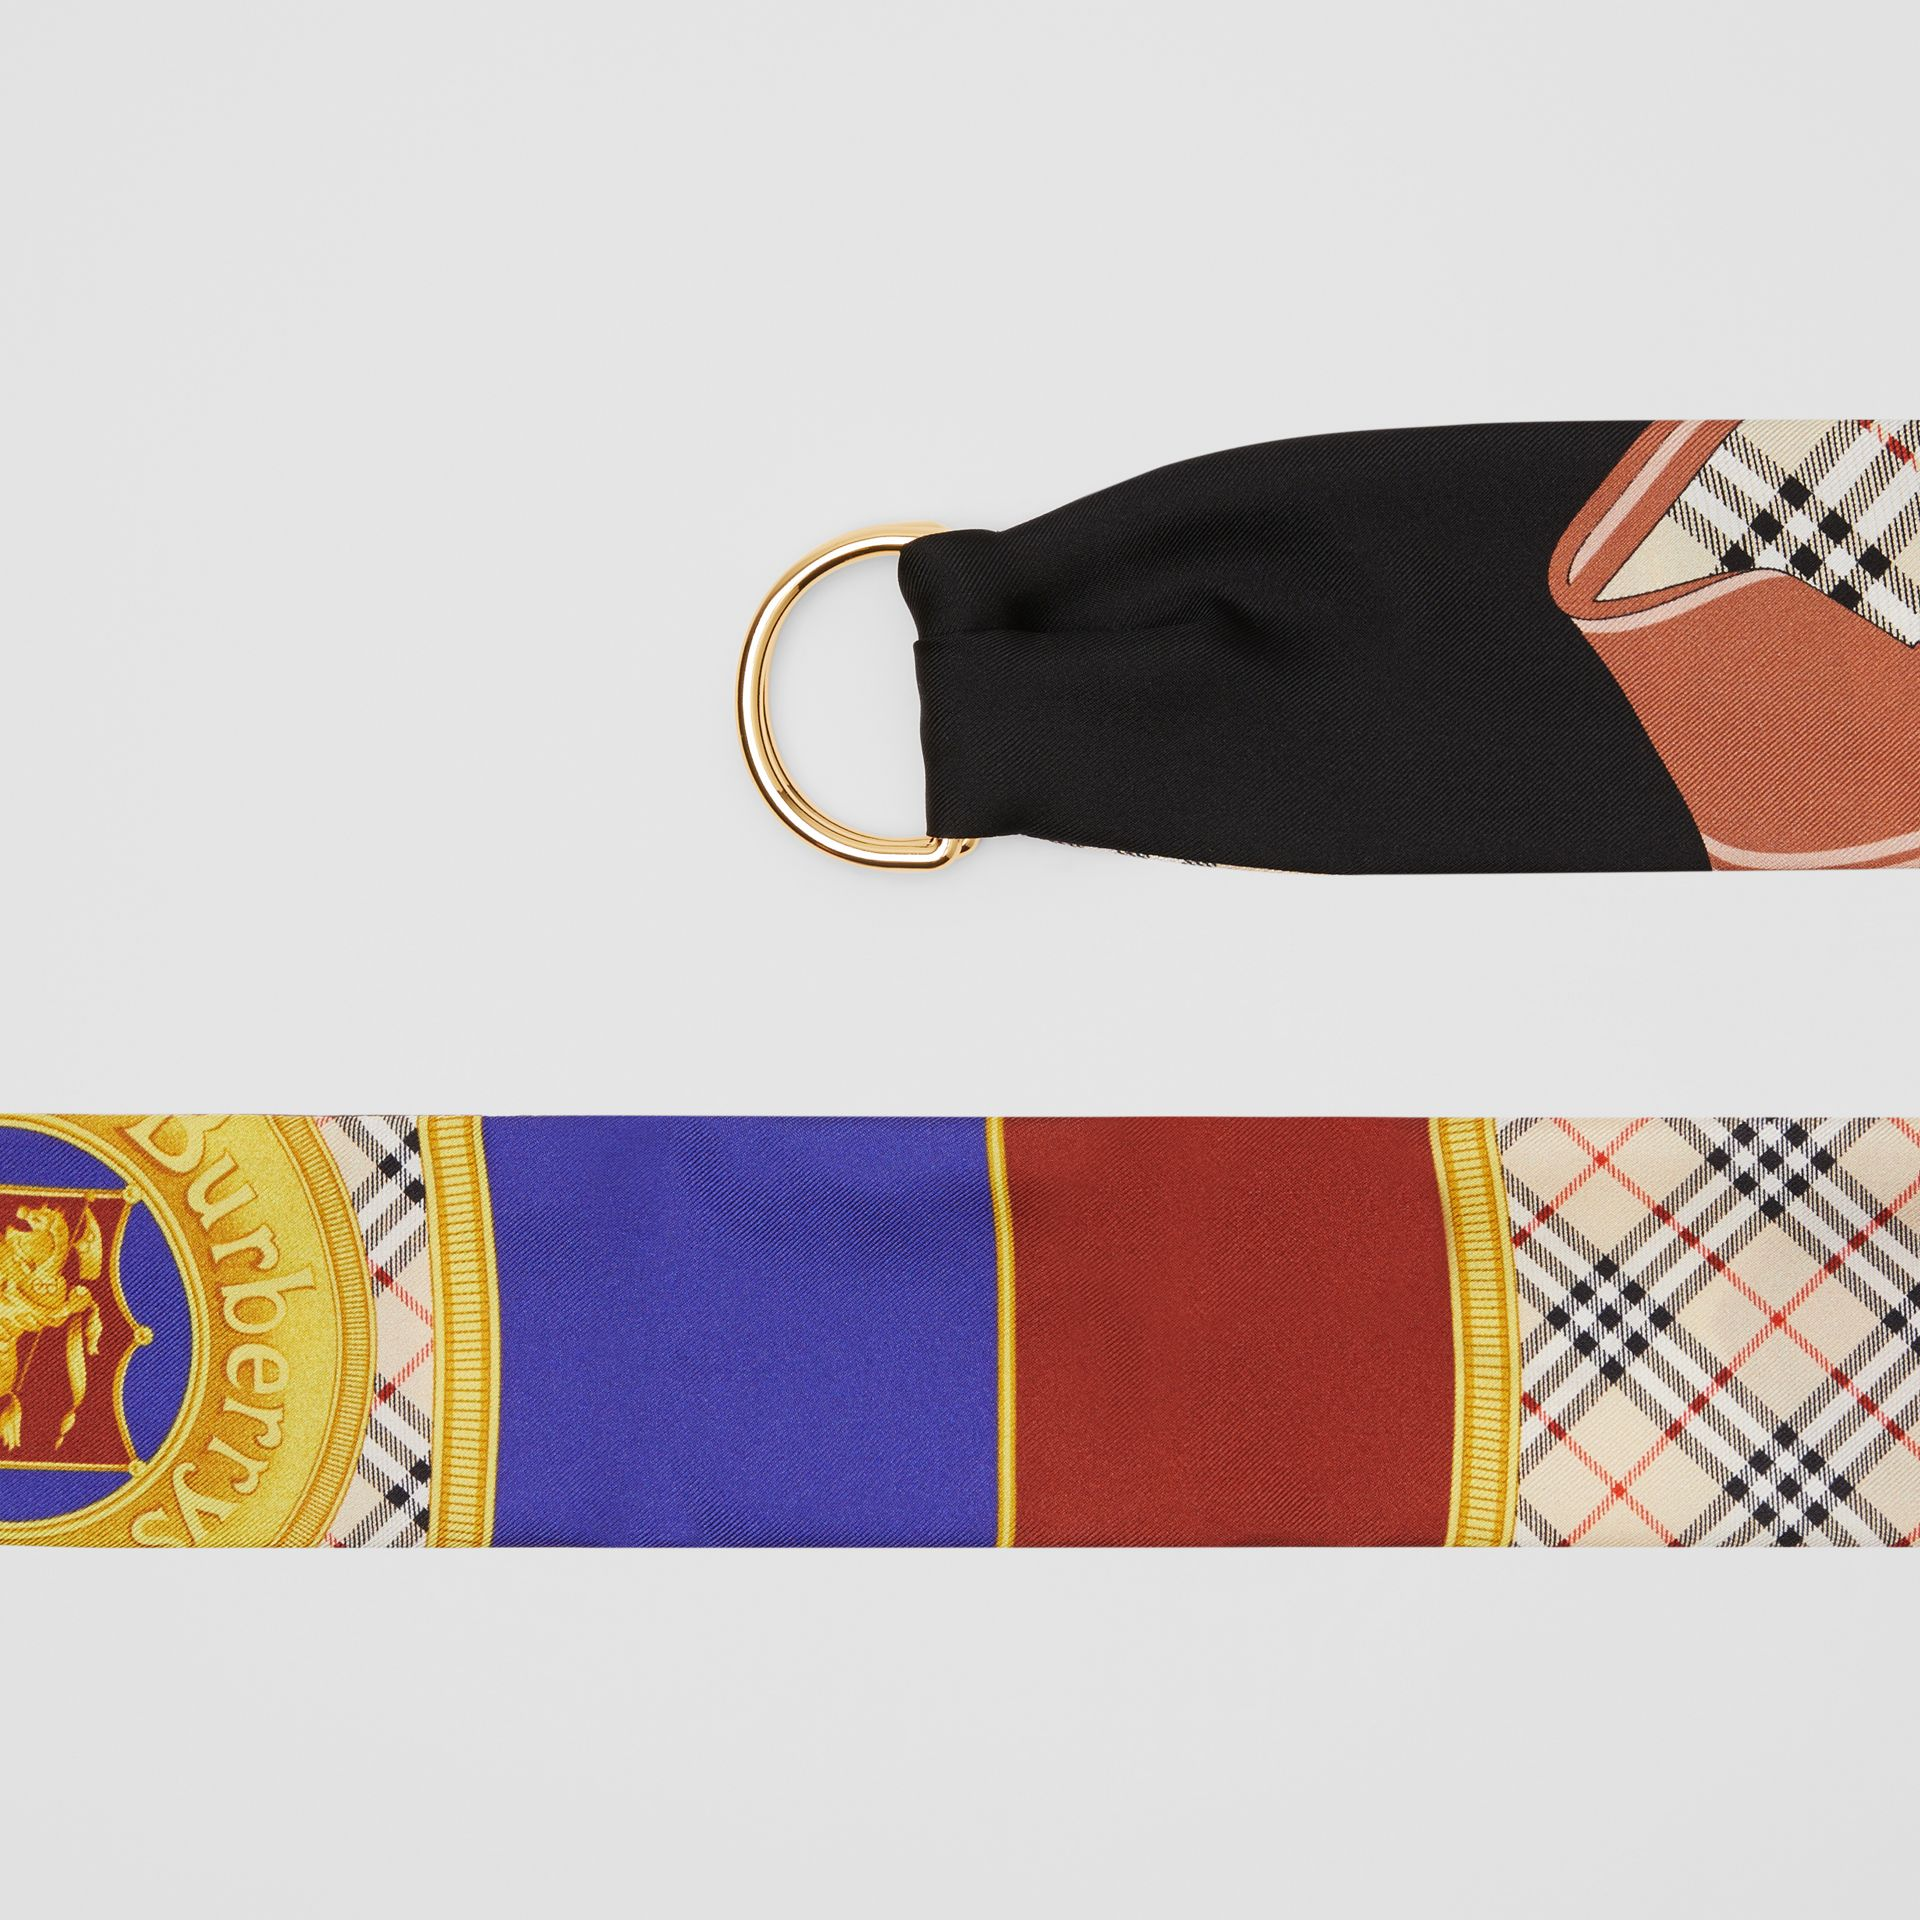 D-ring Detail Archive Print Silk Skinny Scarf in Multicolour - Women | Burberry - gallery image 1